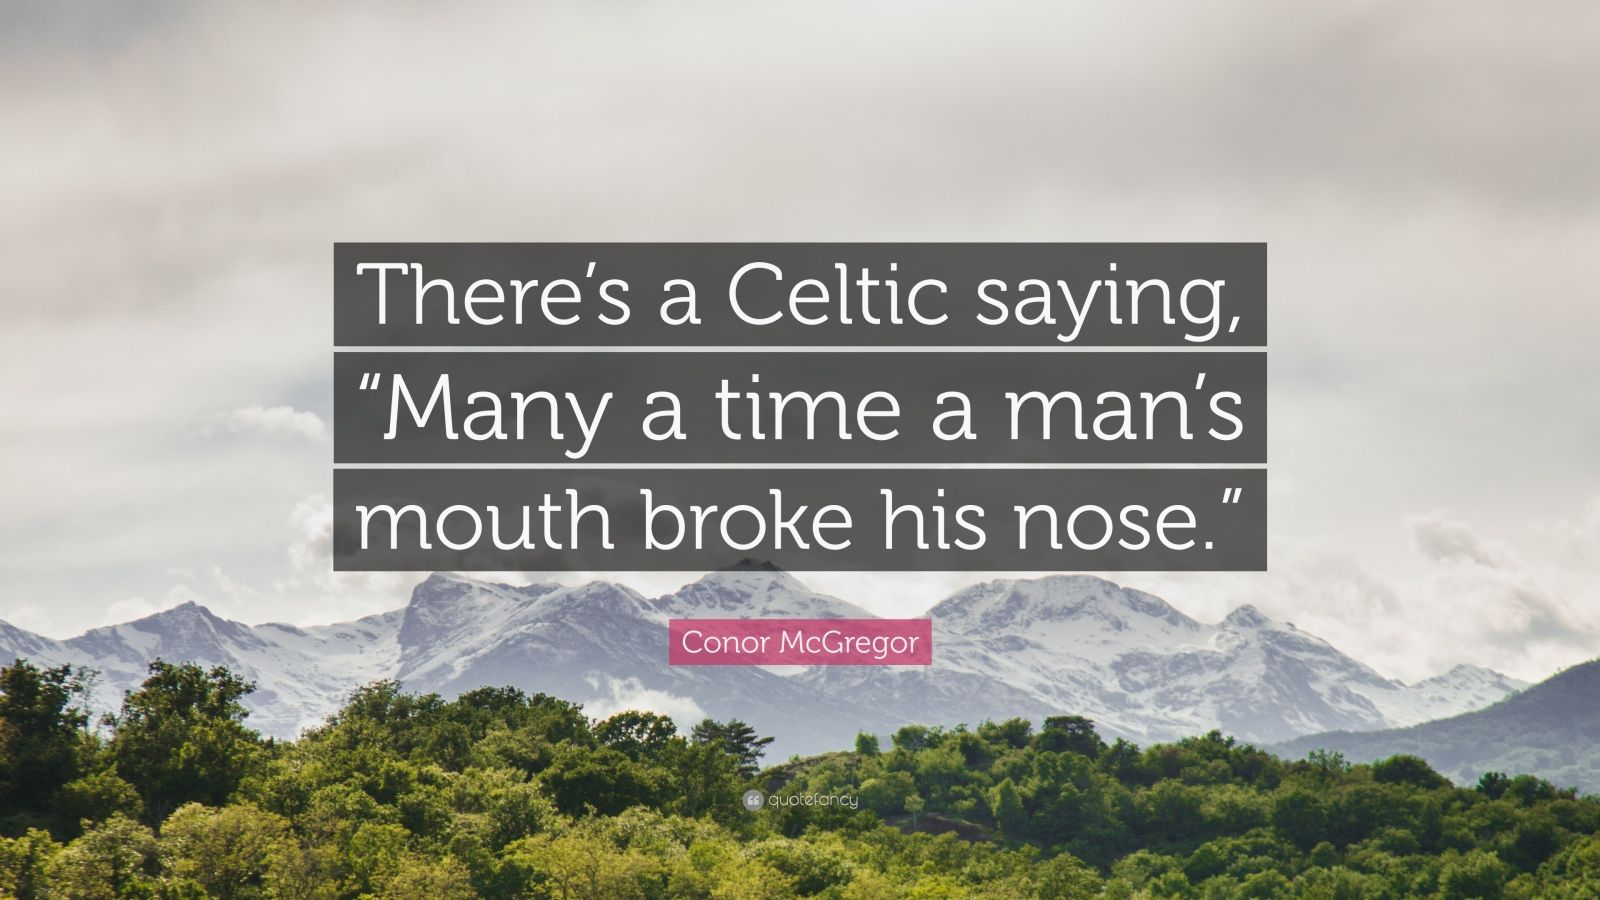 """Conor McGregor Quote: """"There's a Celtic saying, """"Many a time a man's mouth broke his nose."""""""""""